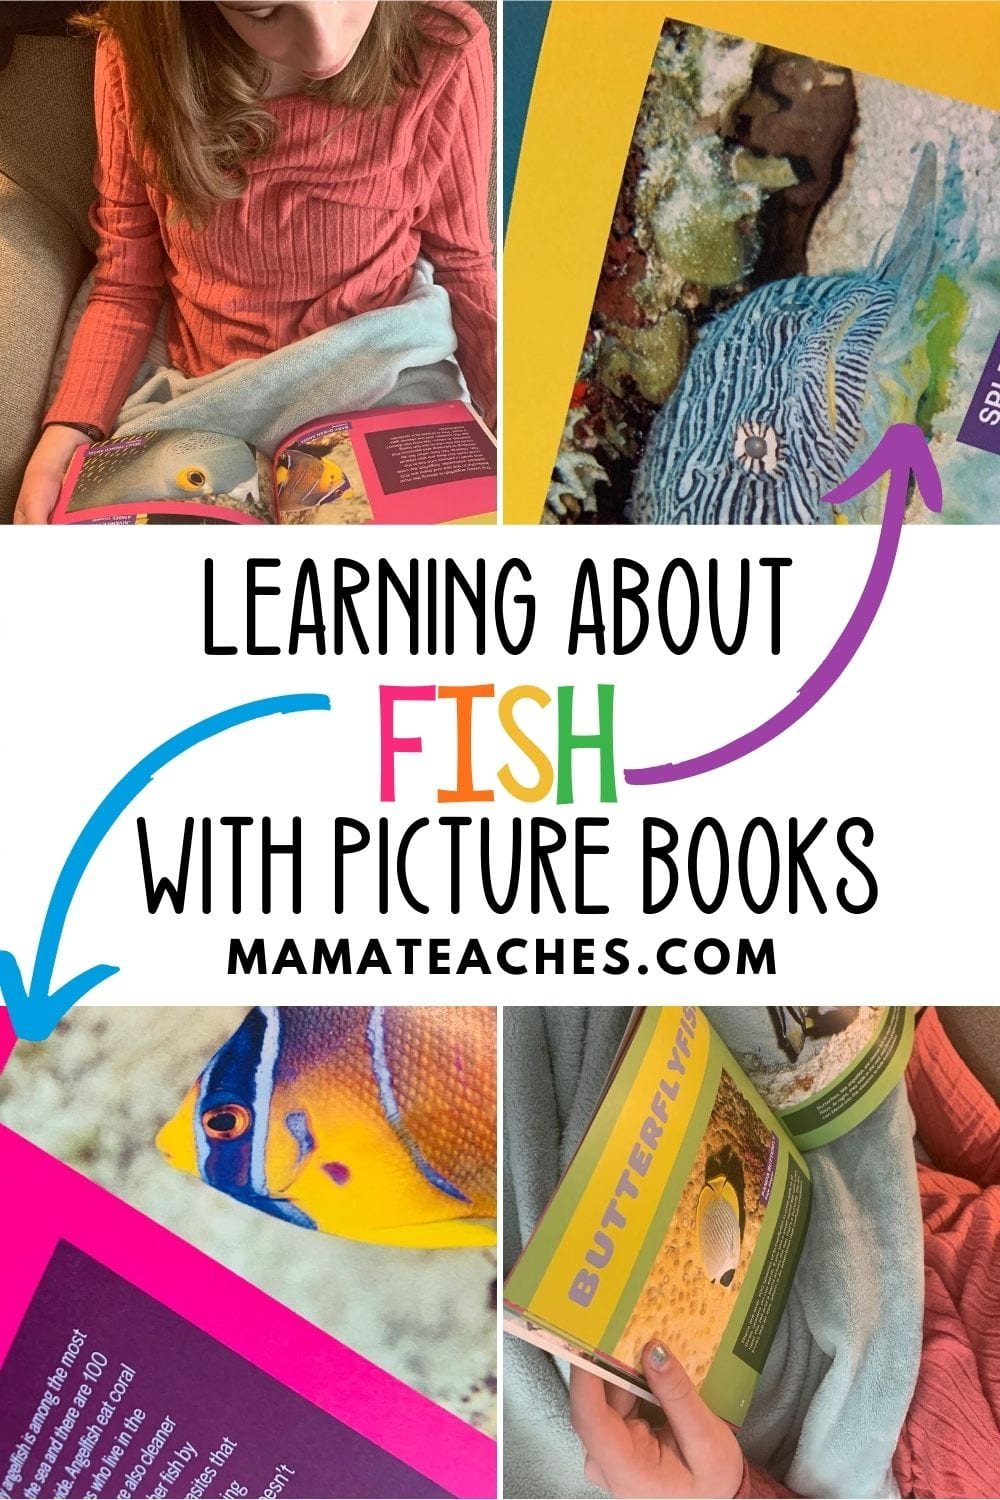 Learning About Fish with Picture Books - MamaTeaches.com